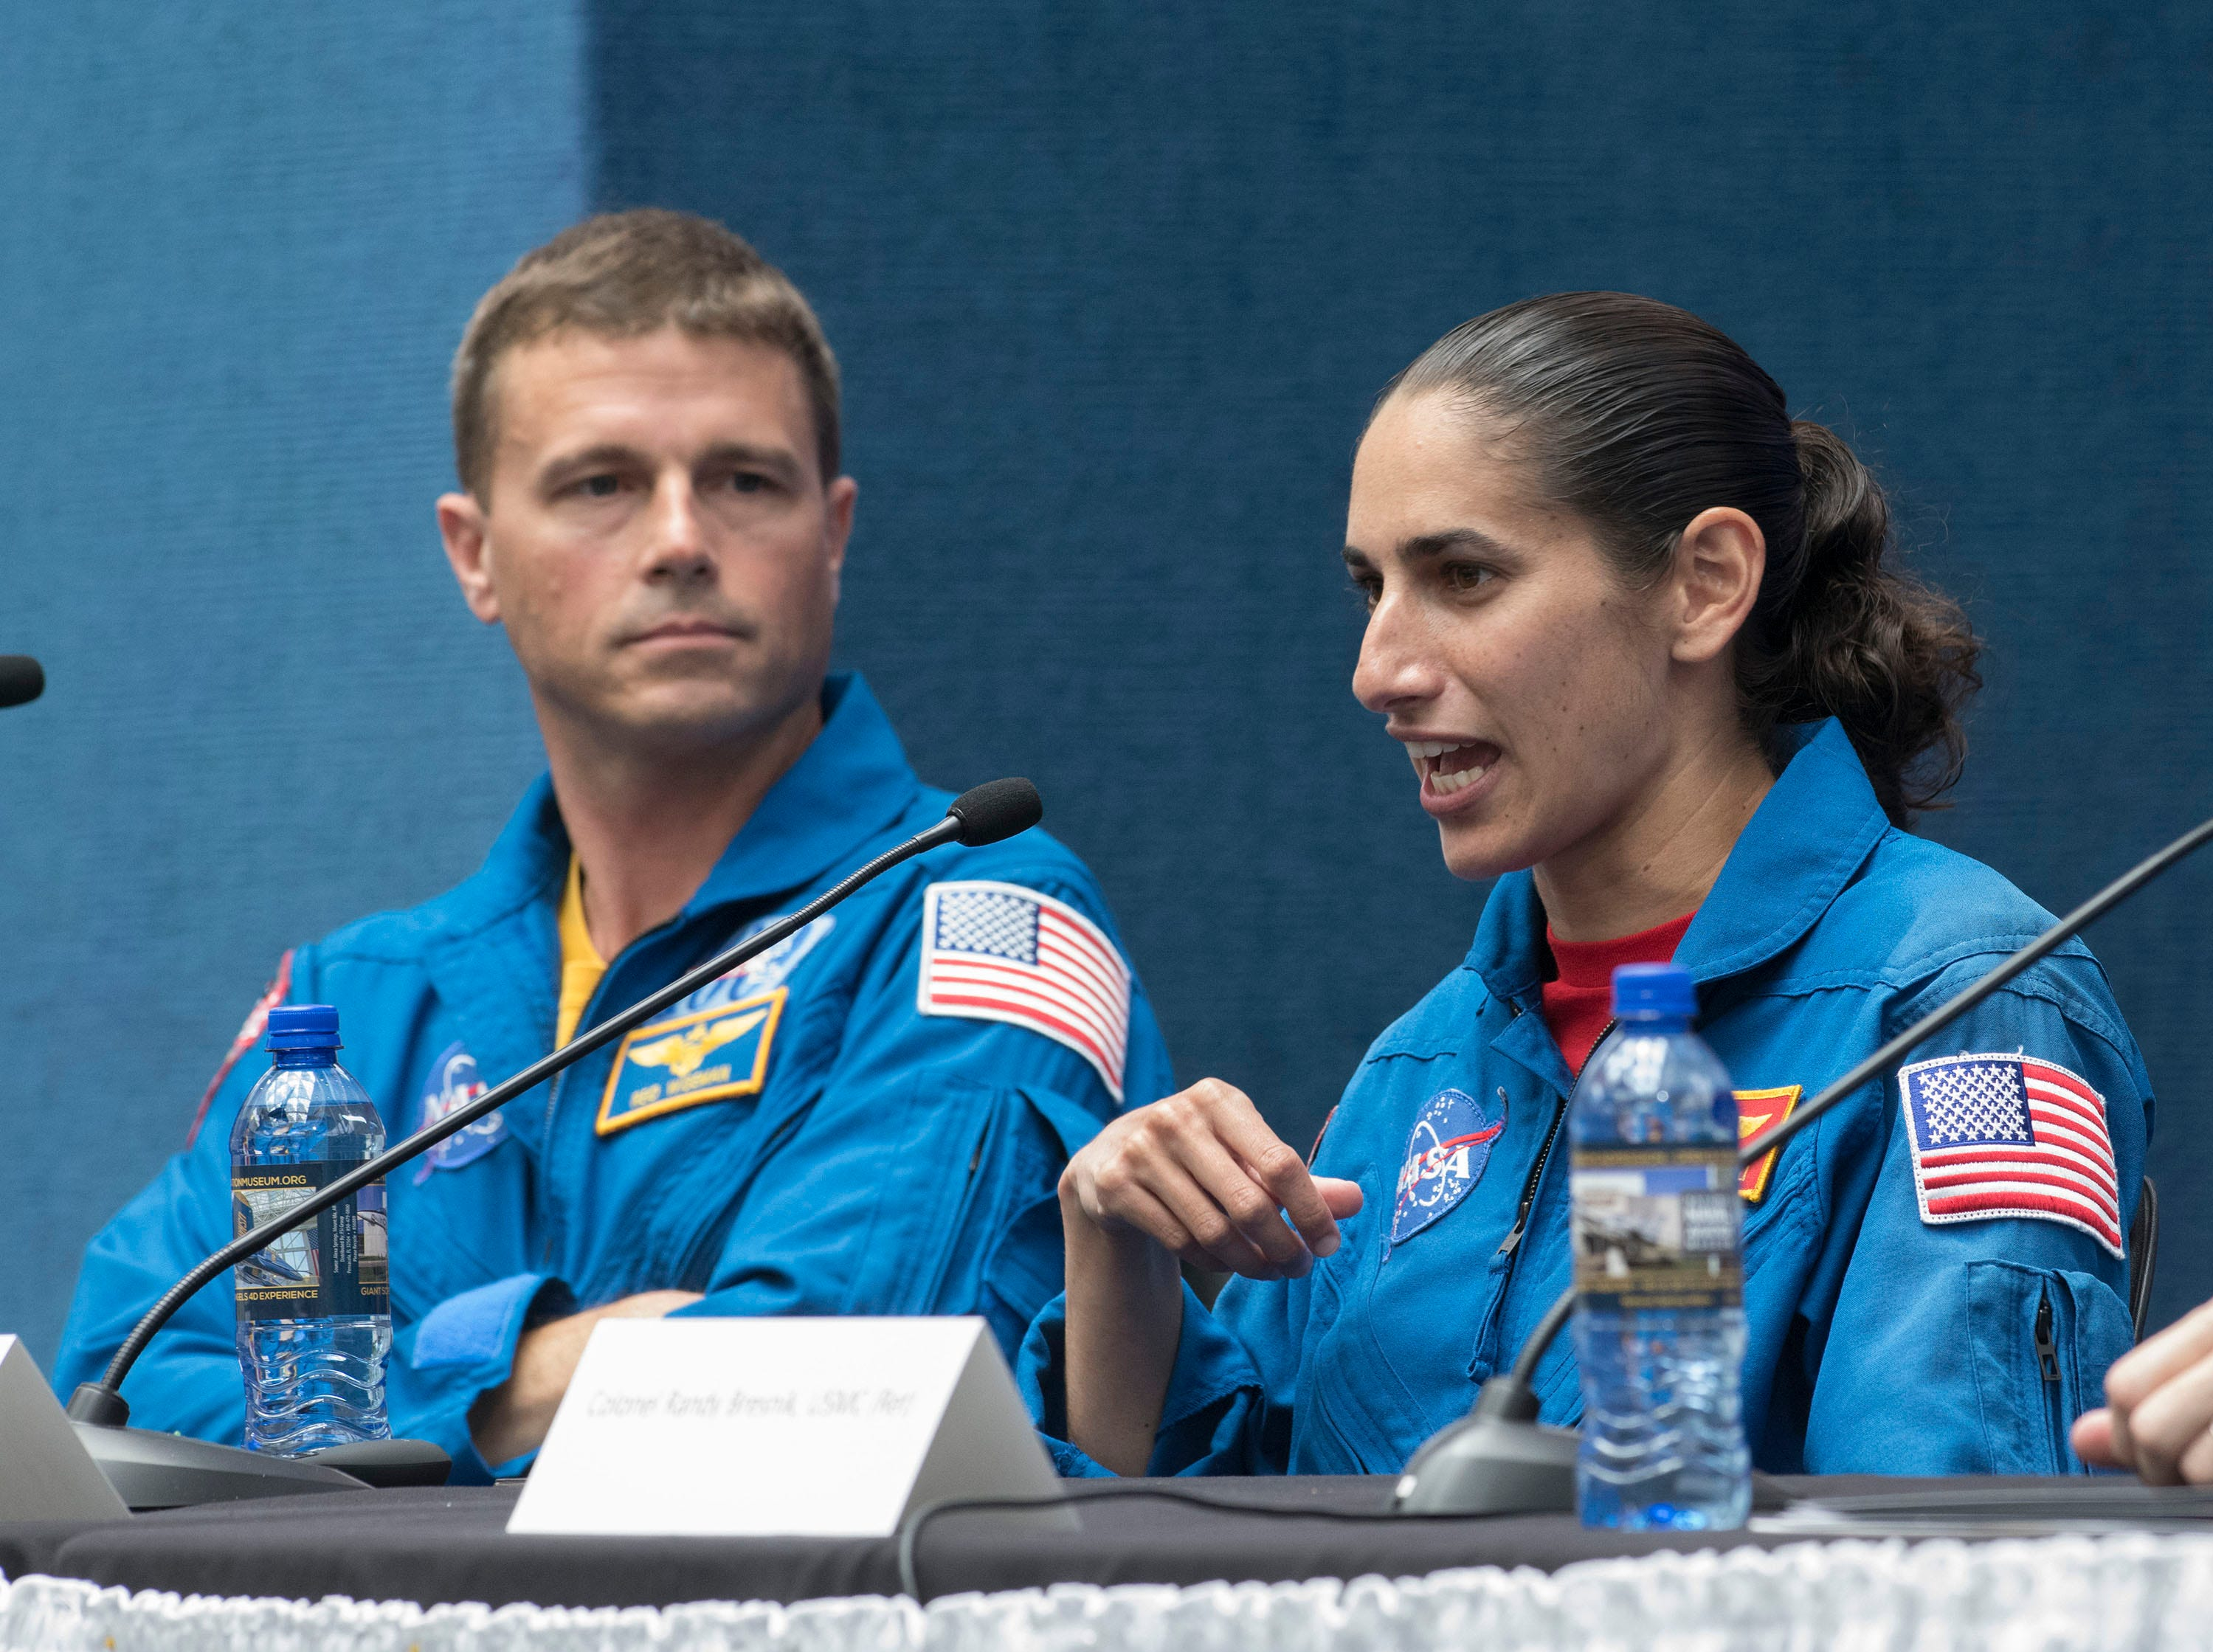 Maj. Jasmin Moghbeli describes her training as an astronaut during a panel discussion while fellow astronaut, Cmdr. Reid Wiseman looks on during the Naval Aviation Symposium on Thursday, May 9, 2019.